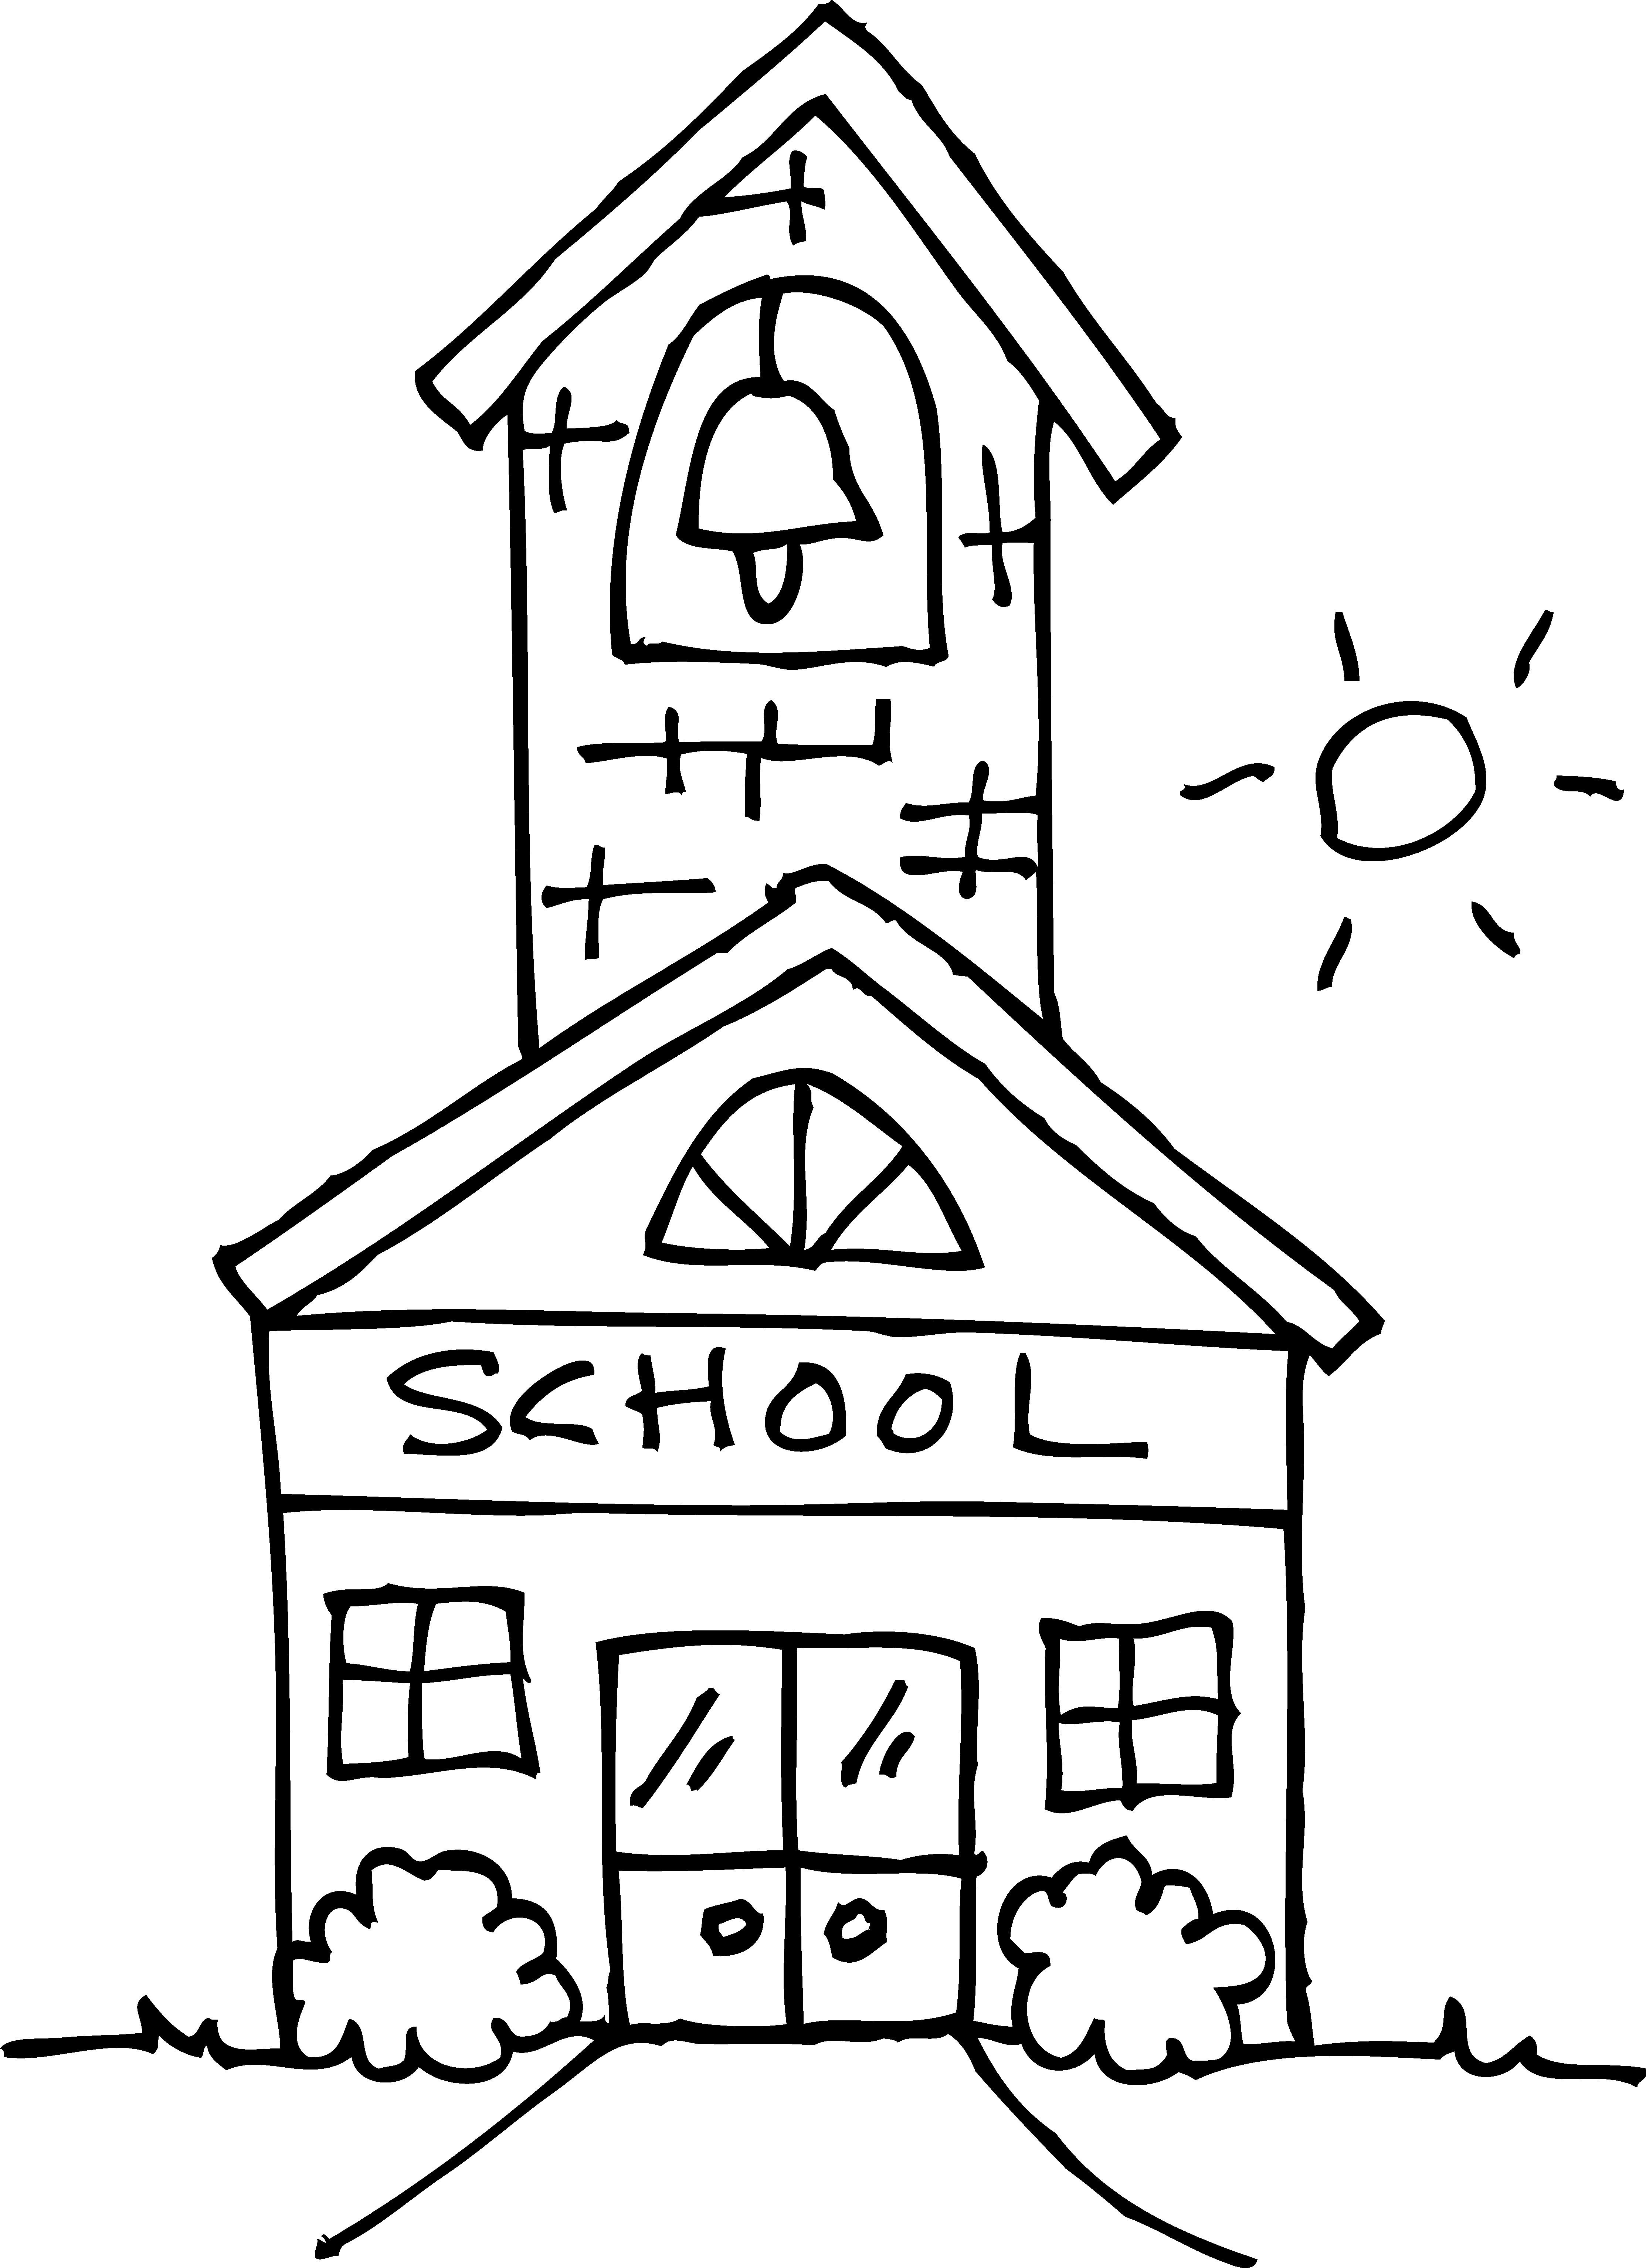 Cute Schoolhouse Coloring Page - Free Clip Art